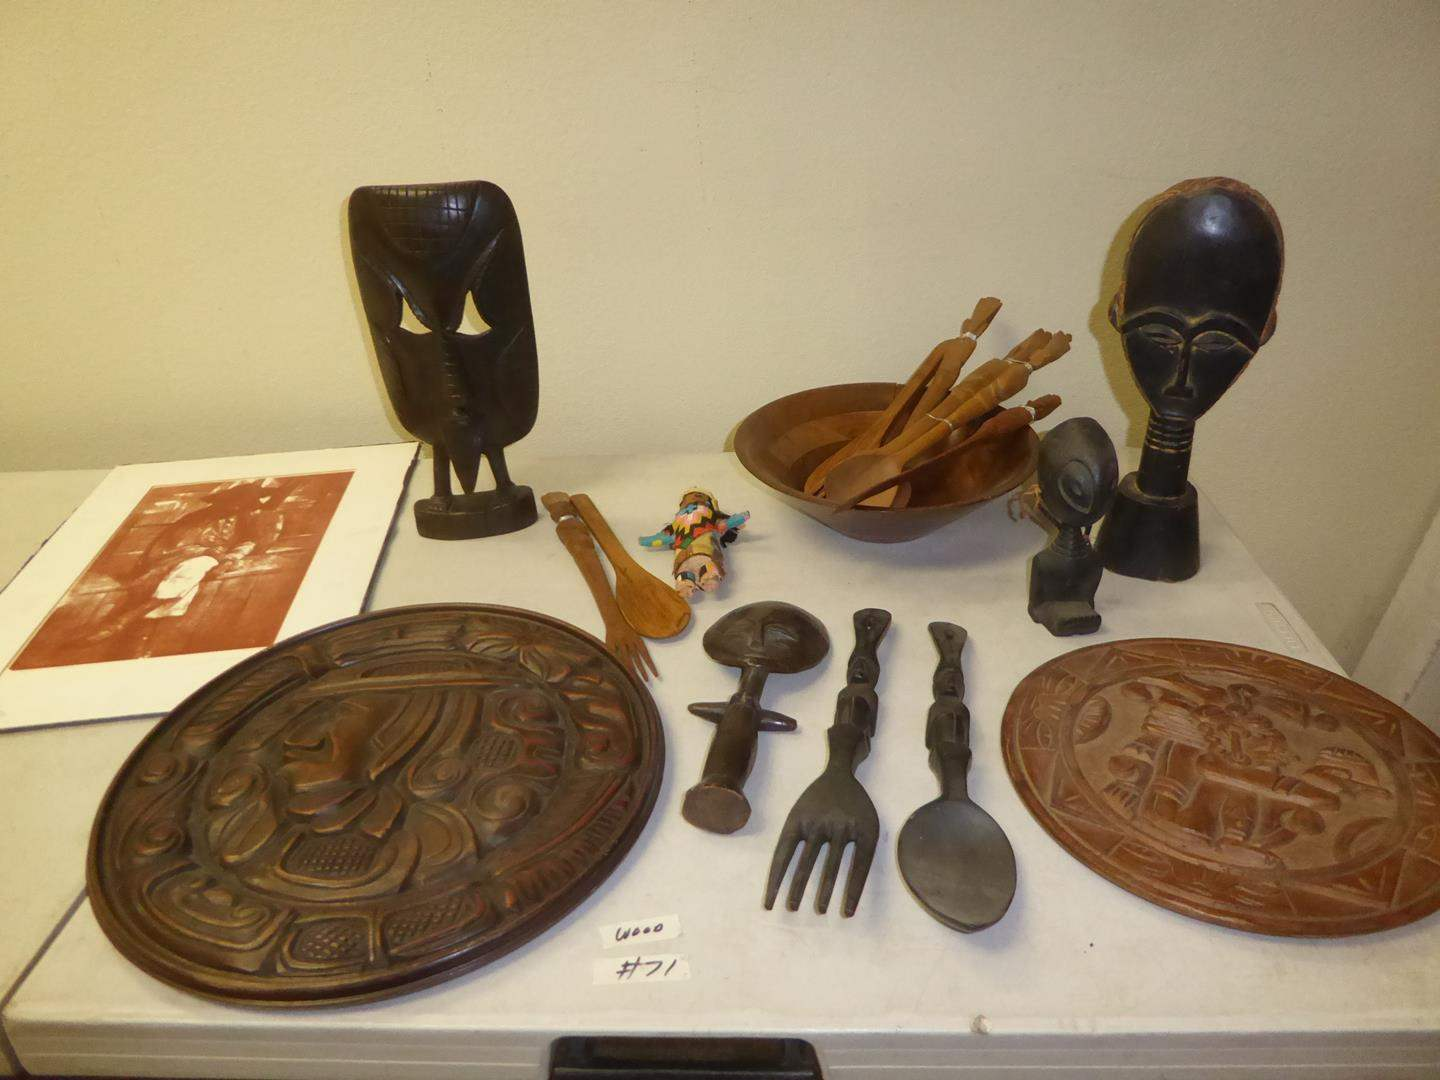 Lot # 71 - Honduras Carved Wood Wall Art, Signed Artist Proof, Hand Carved Wooden Sculptures, Carved Wood Utensils & Walnut Bowl (main image)